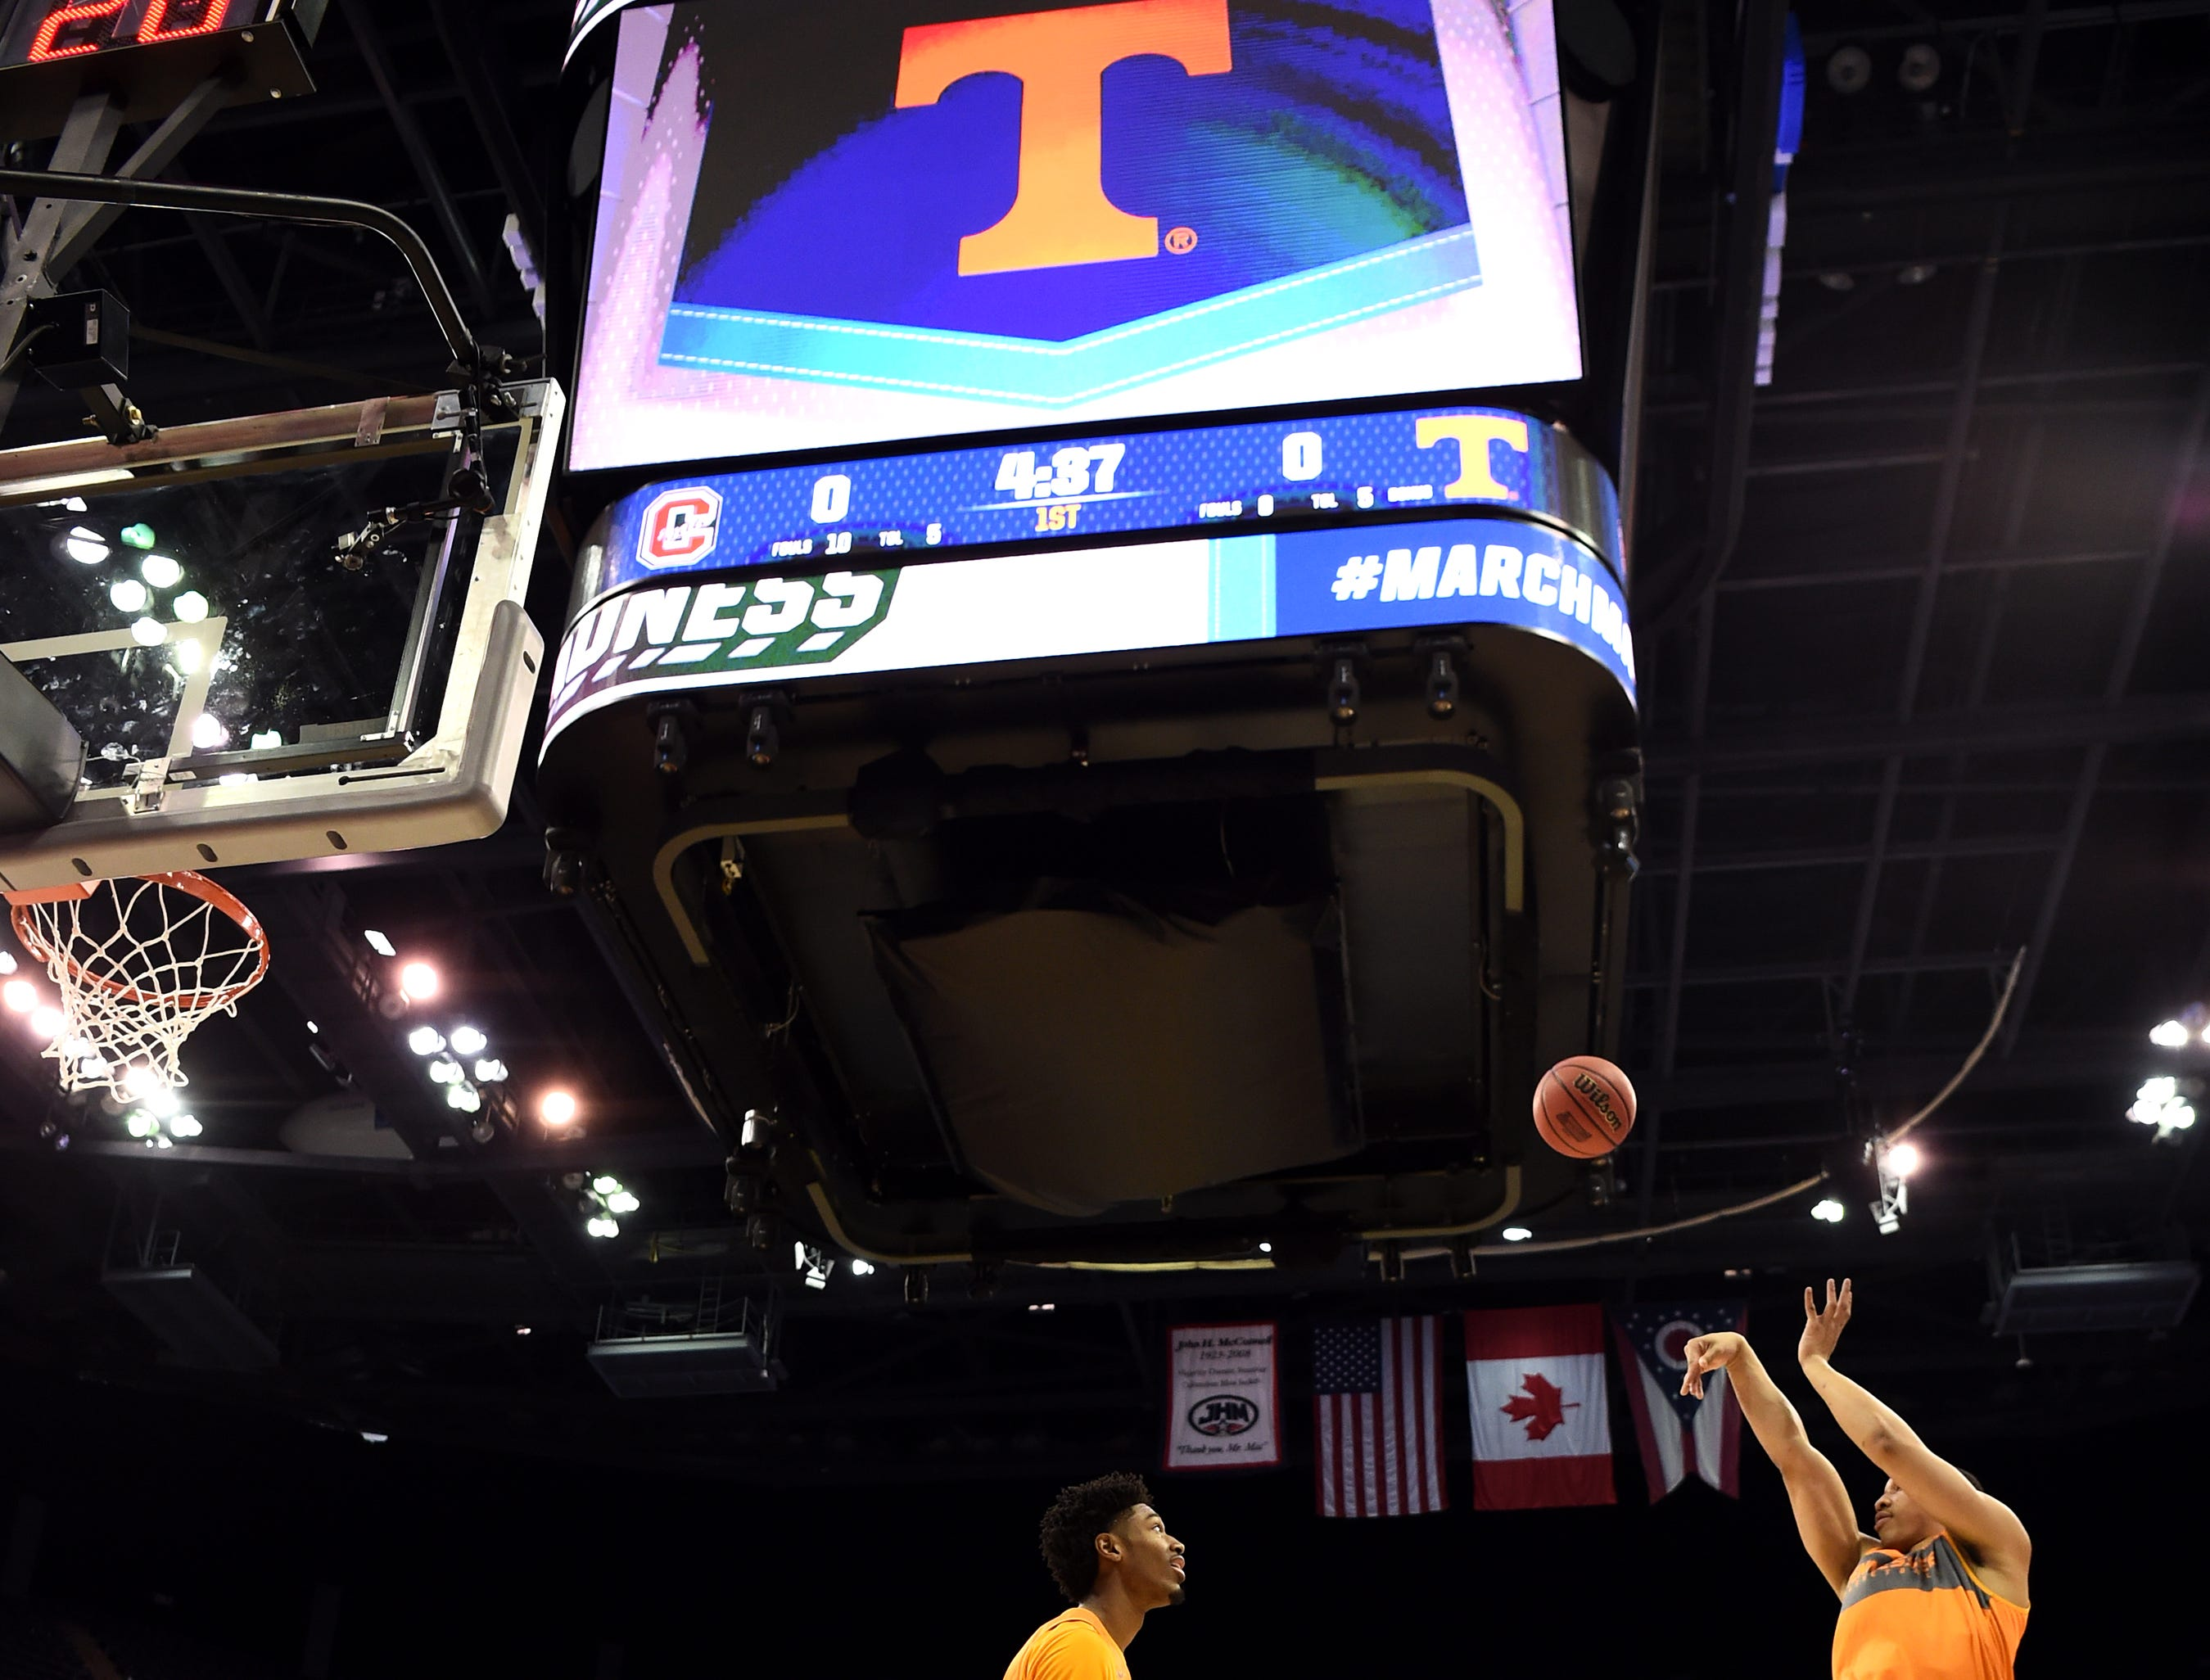 Tennessee forward Grant Williams (2) shoots past Tennessee forward Kyle Alexander (11) during Tennessee's practice on Thursday, March 21, 2019, before their first round NCAA Tournament game against Colgate at Nationwide Arena in Columbus, Ohio.